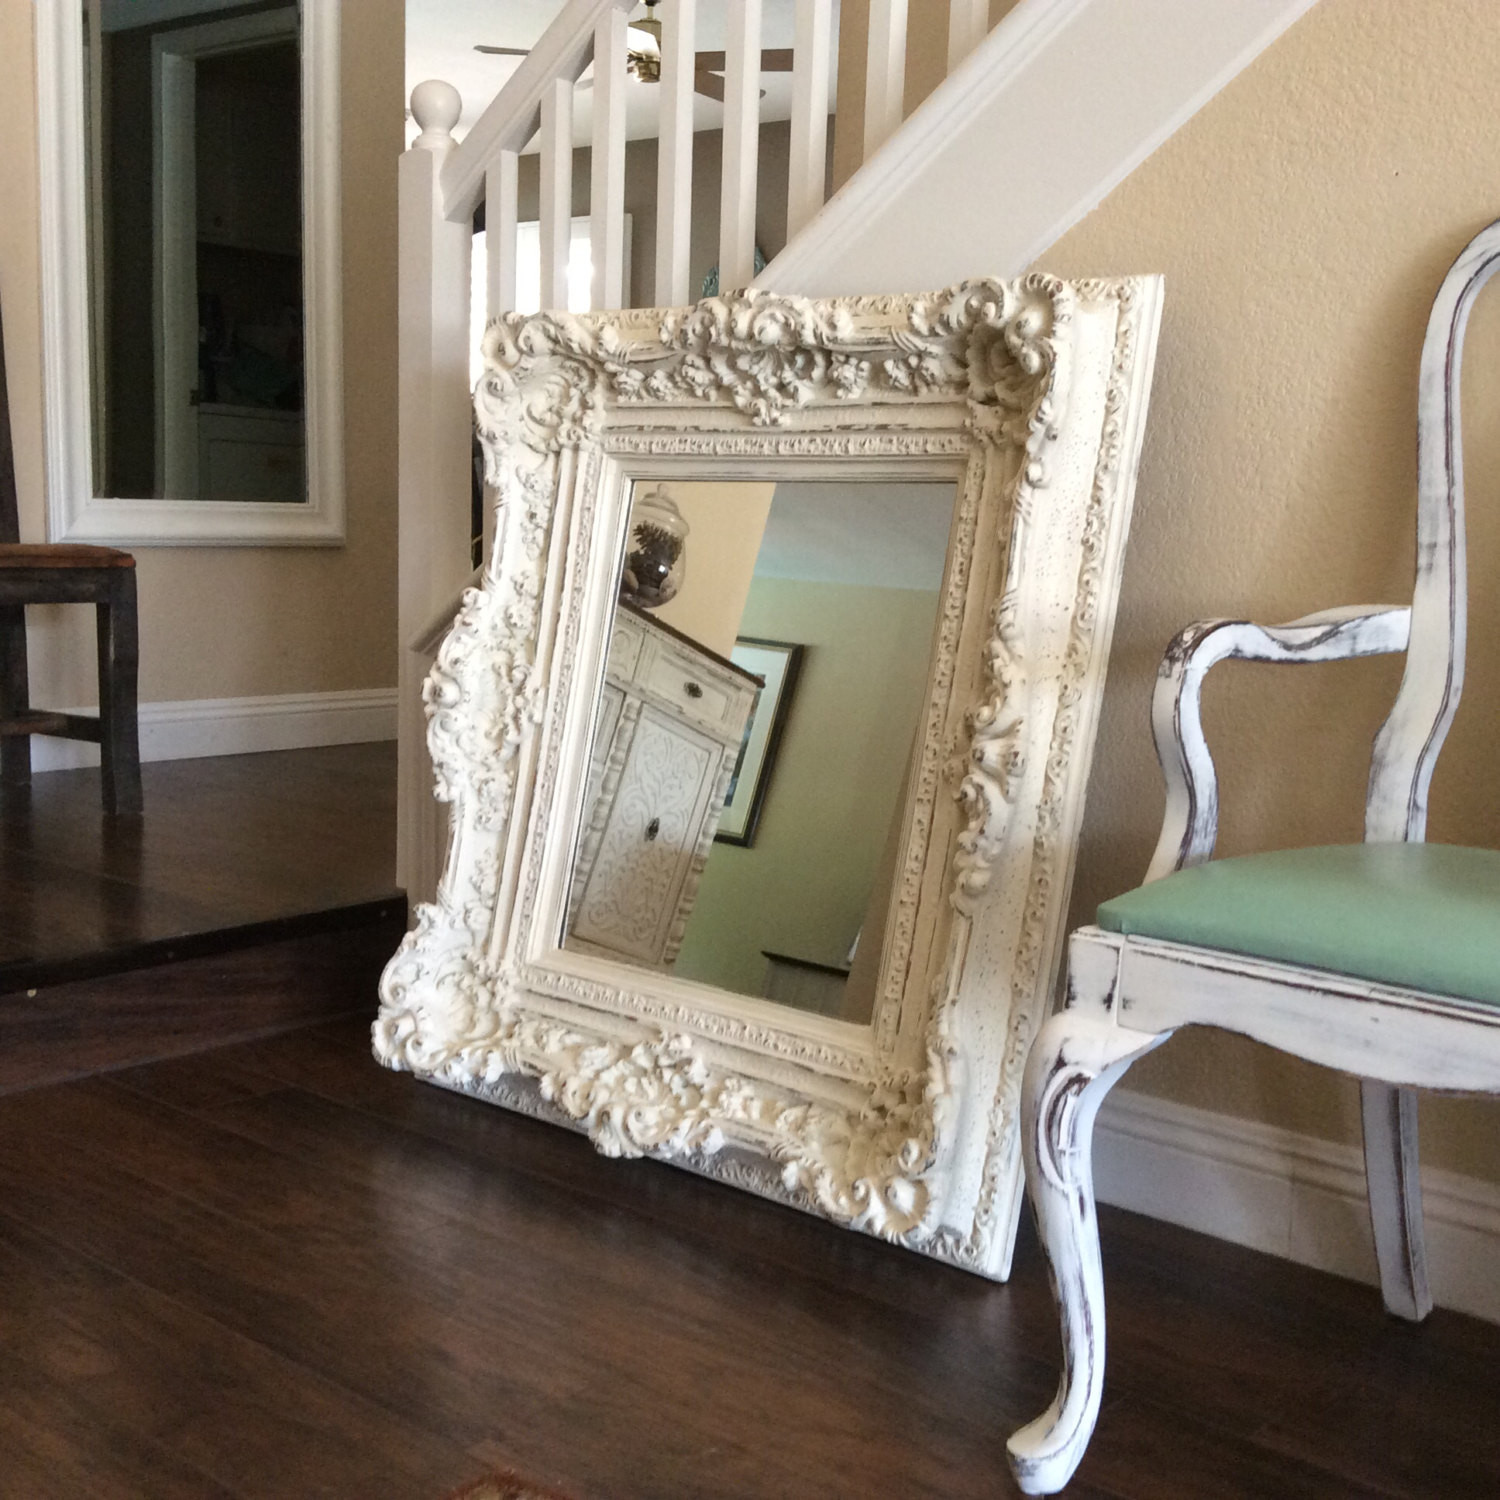 Best ideas about Shabby Chic Mirror . Save or Pin Fabulous LARGE WHITE MIRROR Shabby Chic Mirror Cottage Chic Now.